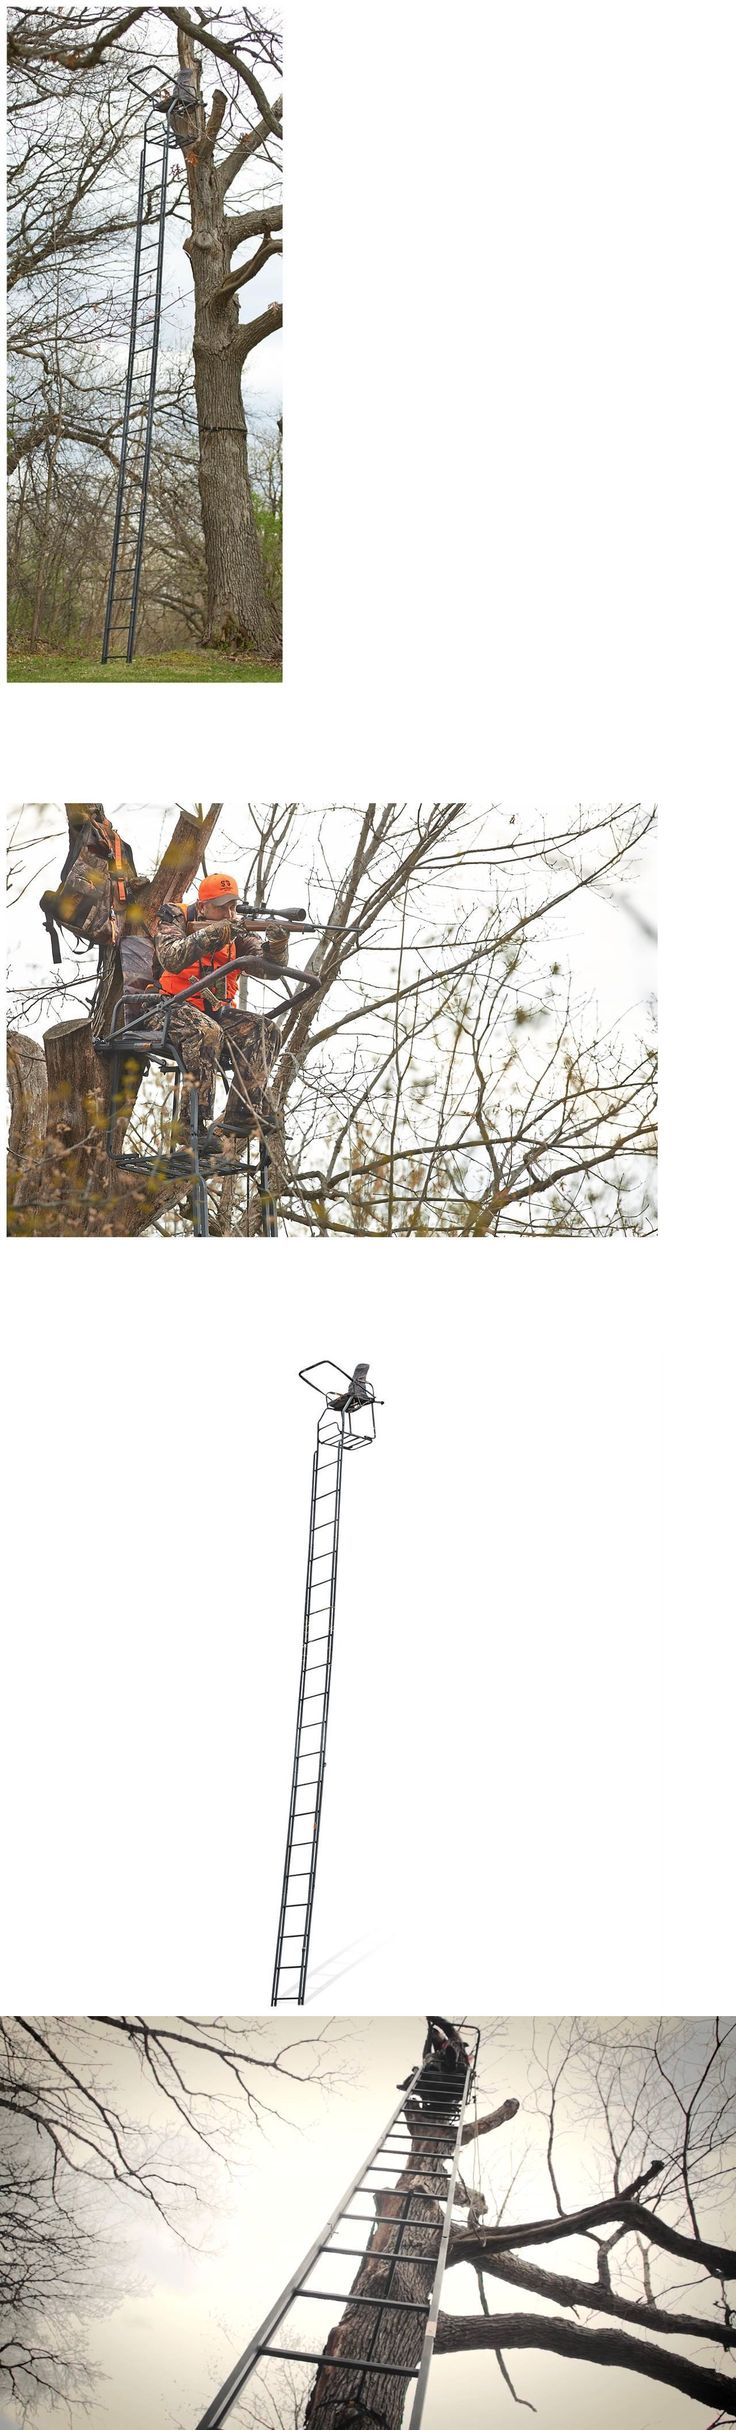 Tree Stands 52508: Ladder Tree Stand 25 Deluxe Double Rail Deer Season Fall Bow Gun Rest -> BUY IT NOW ONLY: $194.99 on eBay!